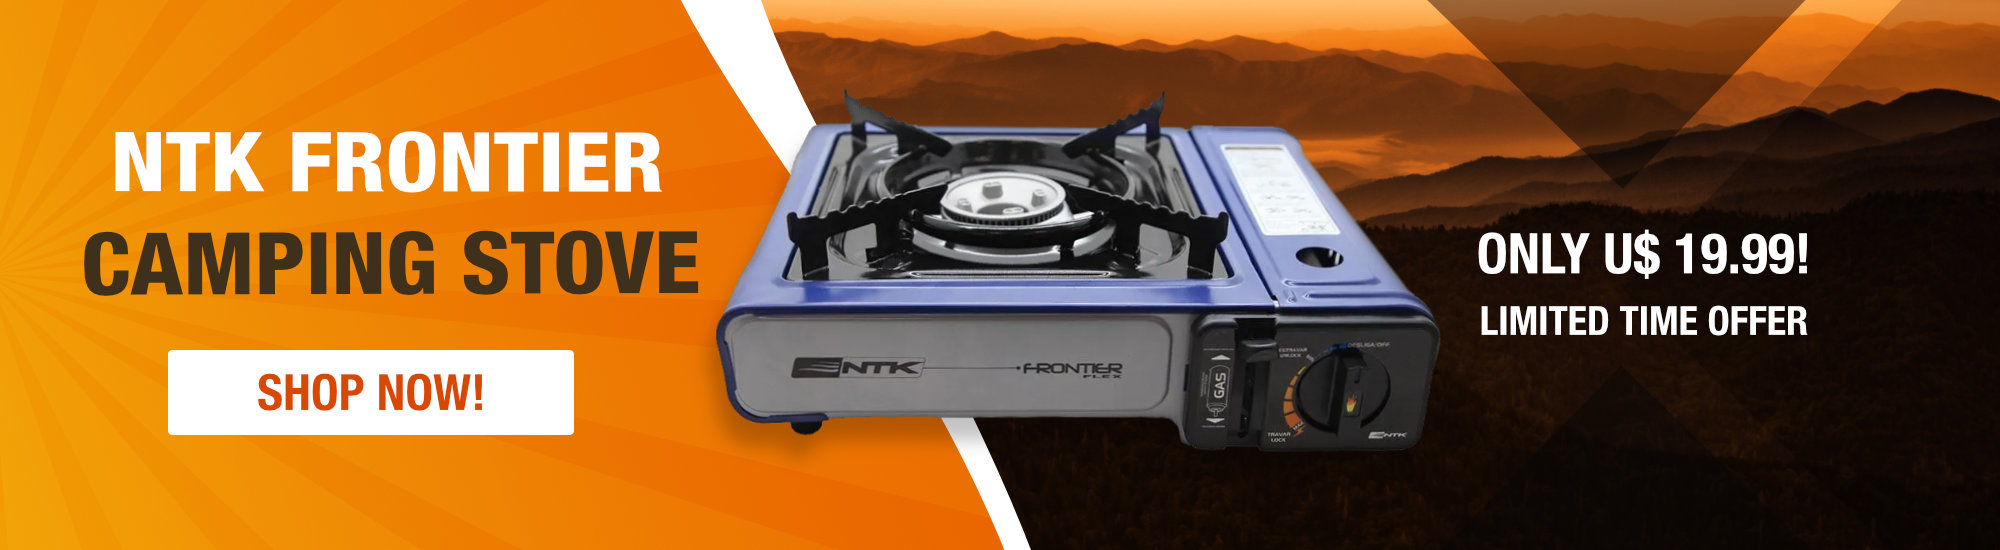 NTK Frontier Camping Stove